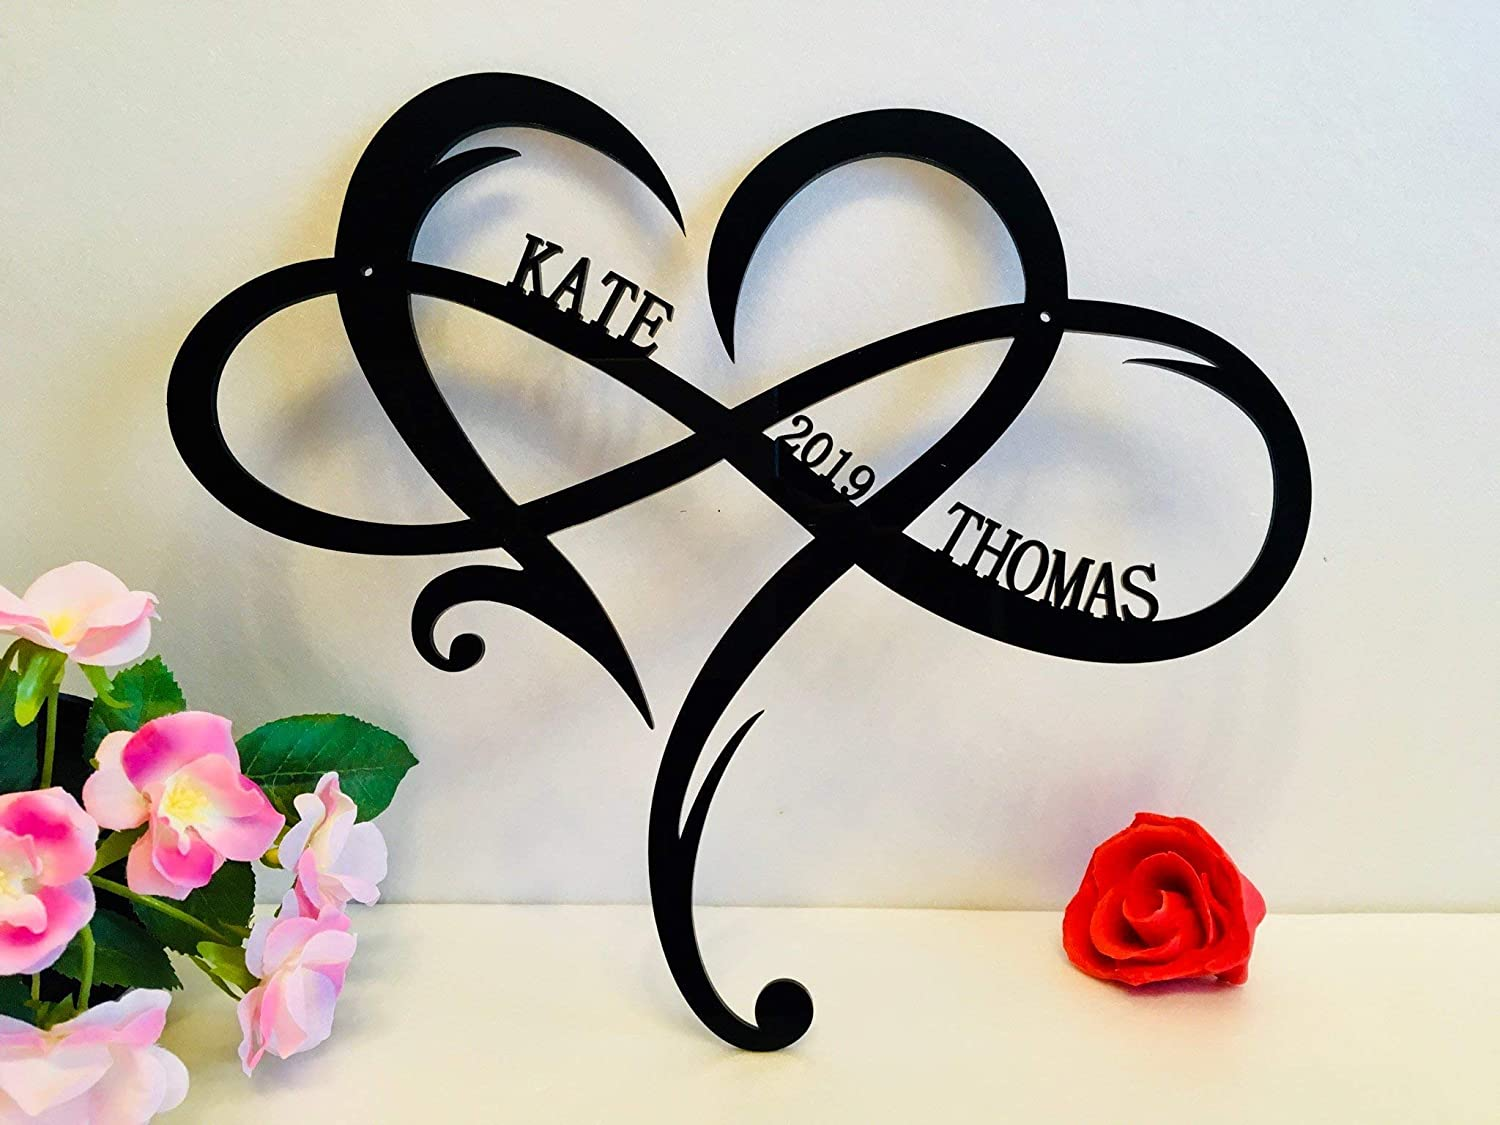 Personalized Wall Hanging Sign Couple Names Est. Year Established Custom Door Hanger Love Heart Shape Infinity Symbol Wedding Decorations Family Gift for Couples Outdoor Valentines Wood Metal Acrylic